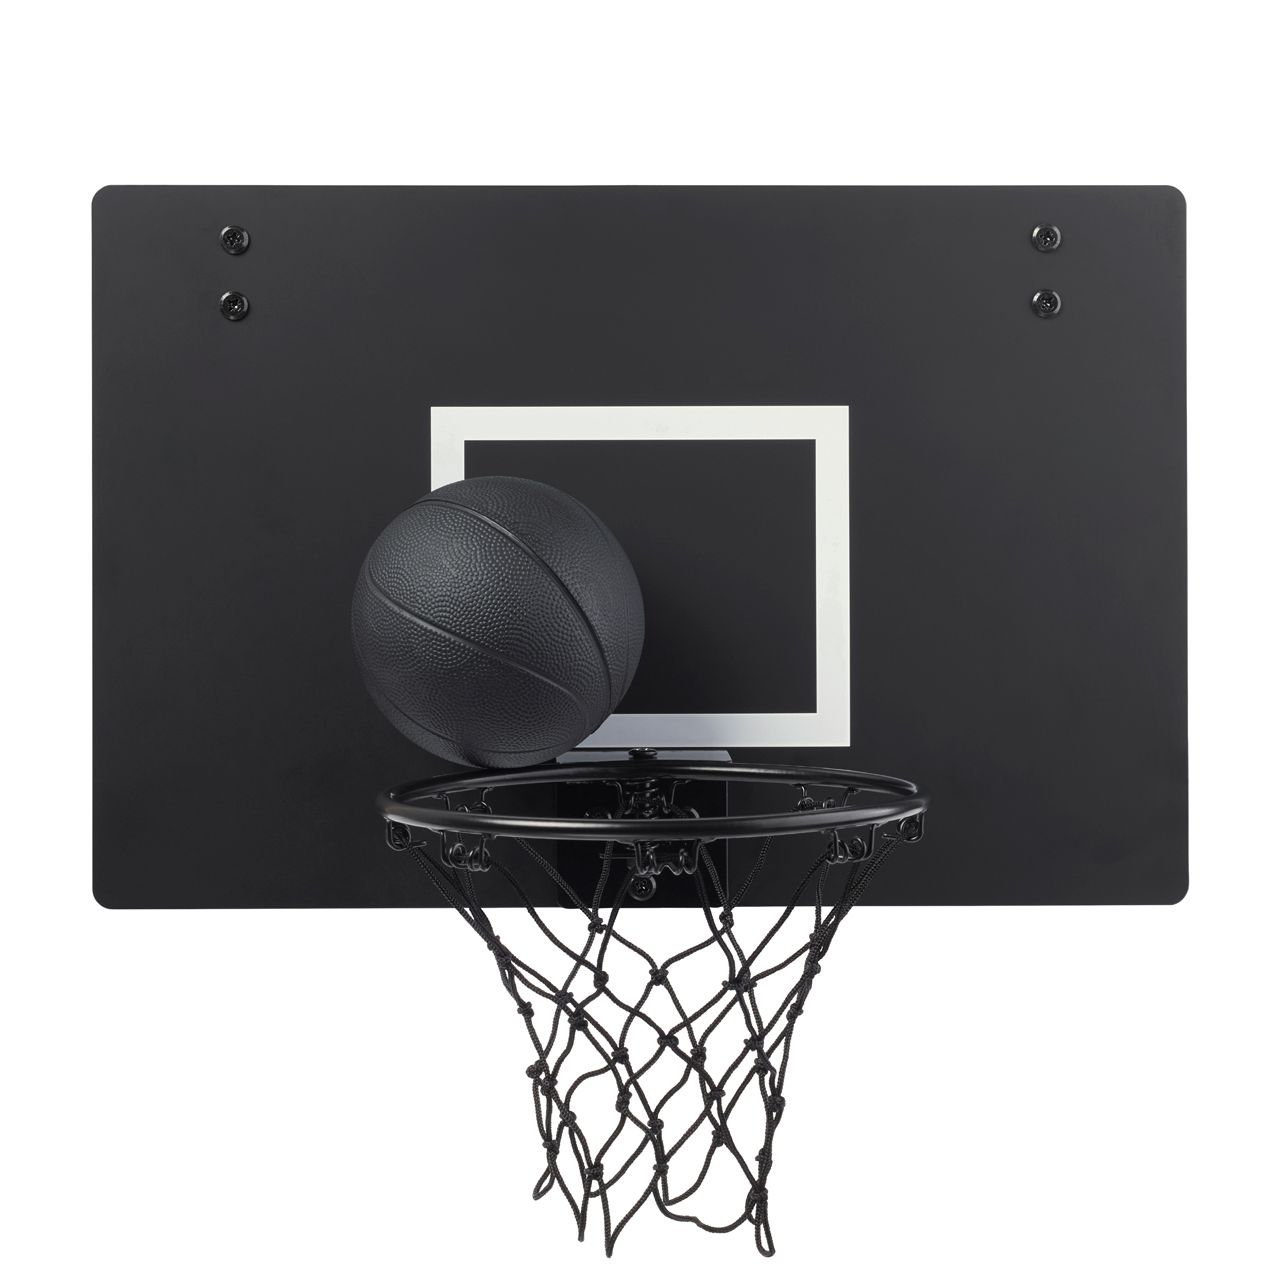 Ikea U S Launches Spanst An Unexpected Urban Lifestyle Collaboration With Chris Stamp Diy Basketball Hoop Basketball Room Basketball Bedroom